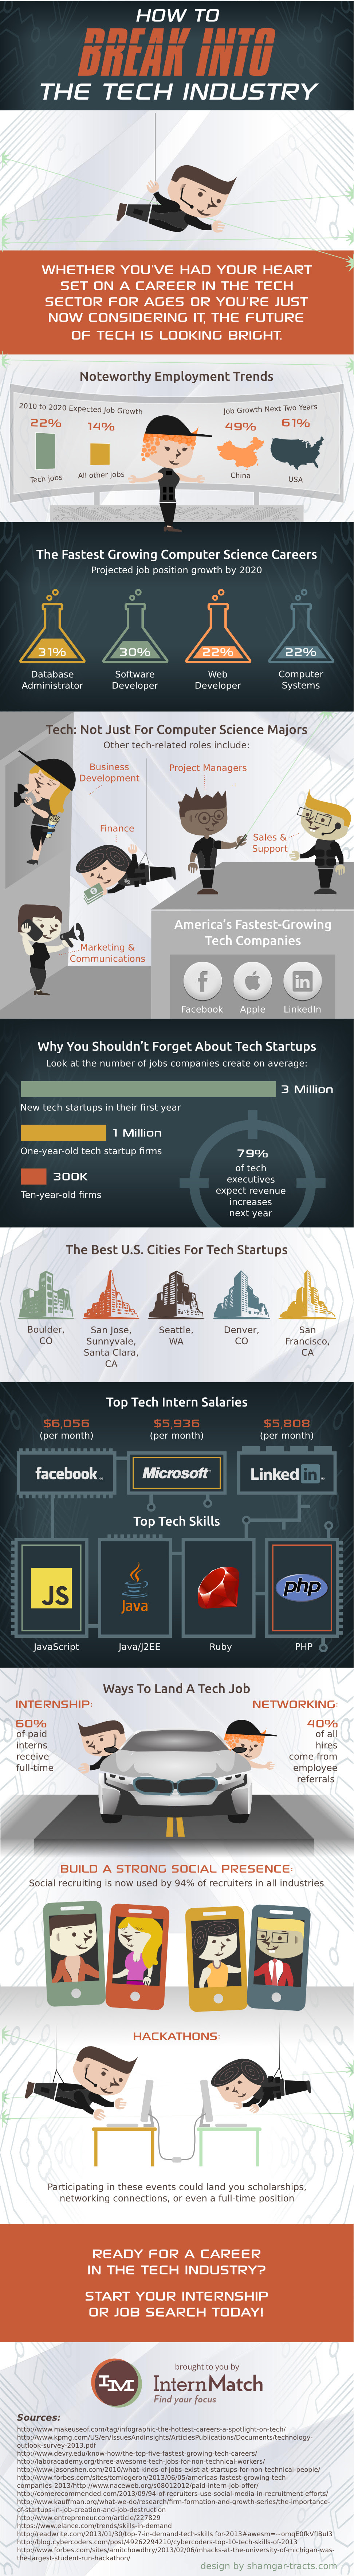 How to Break into the Tech Industry - infographic